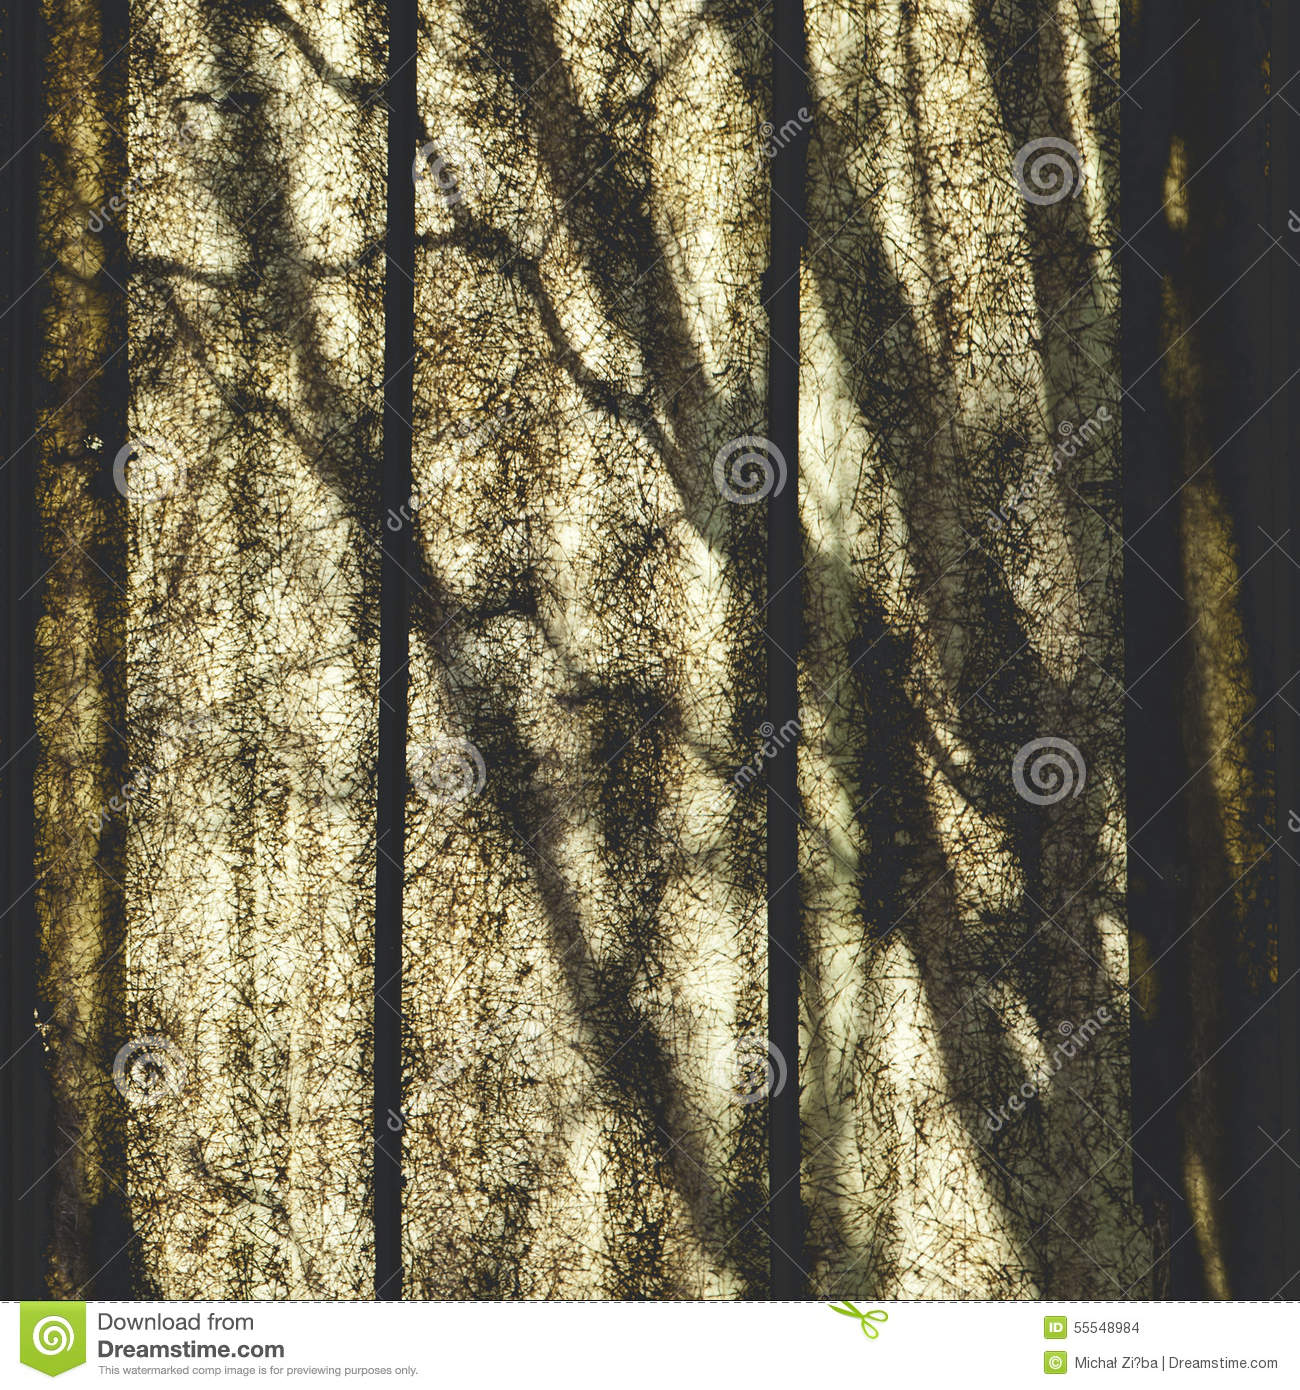 Shadows abstraction on polycarbonate panel